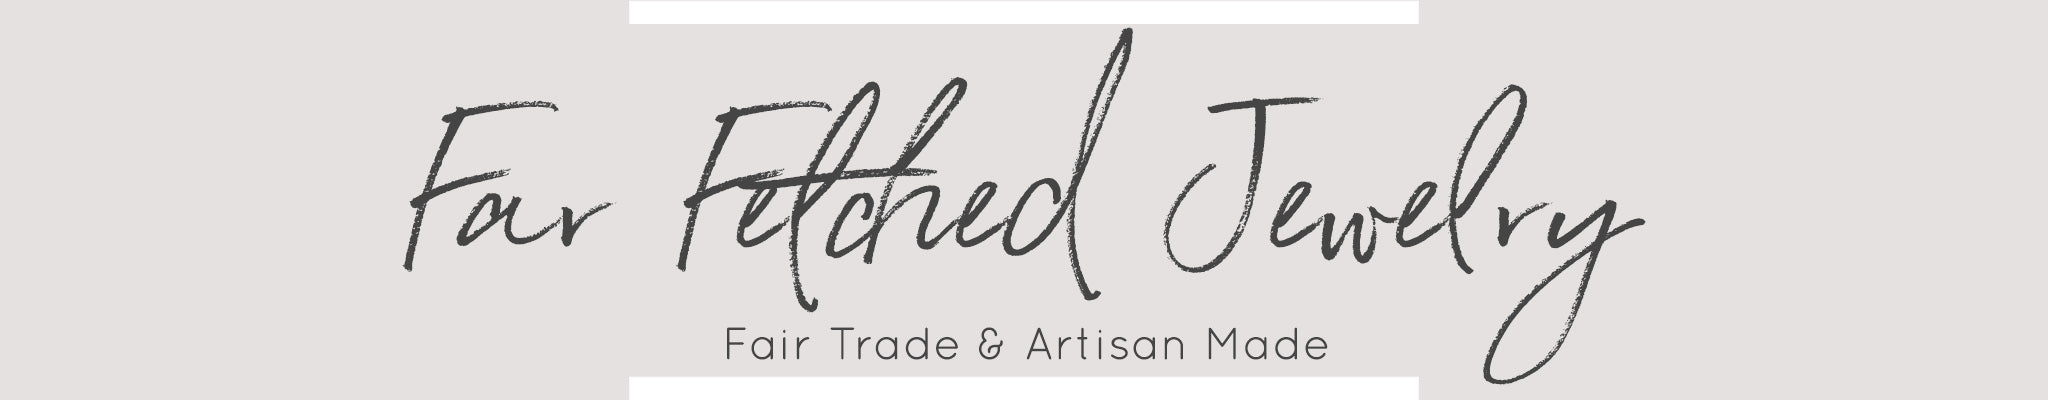 Far Fetched Jewelry | Fair Trade & Artisan Made